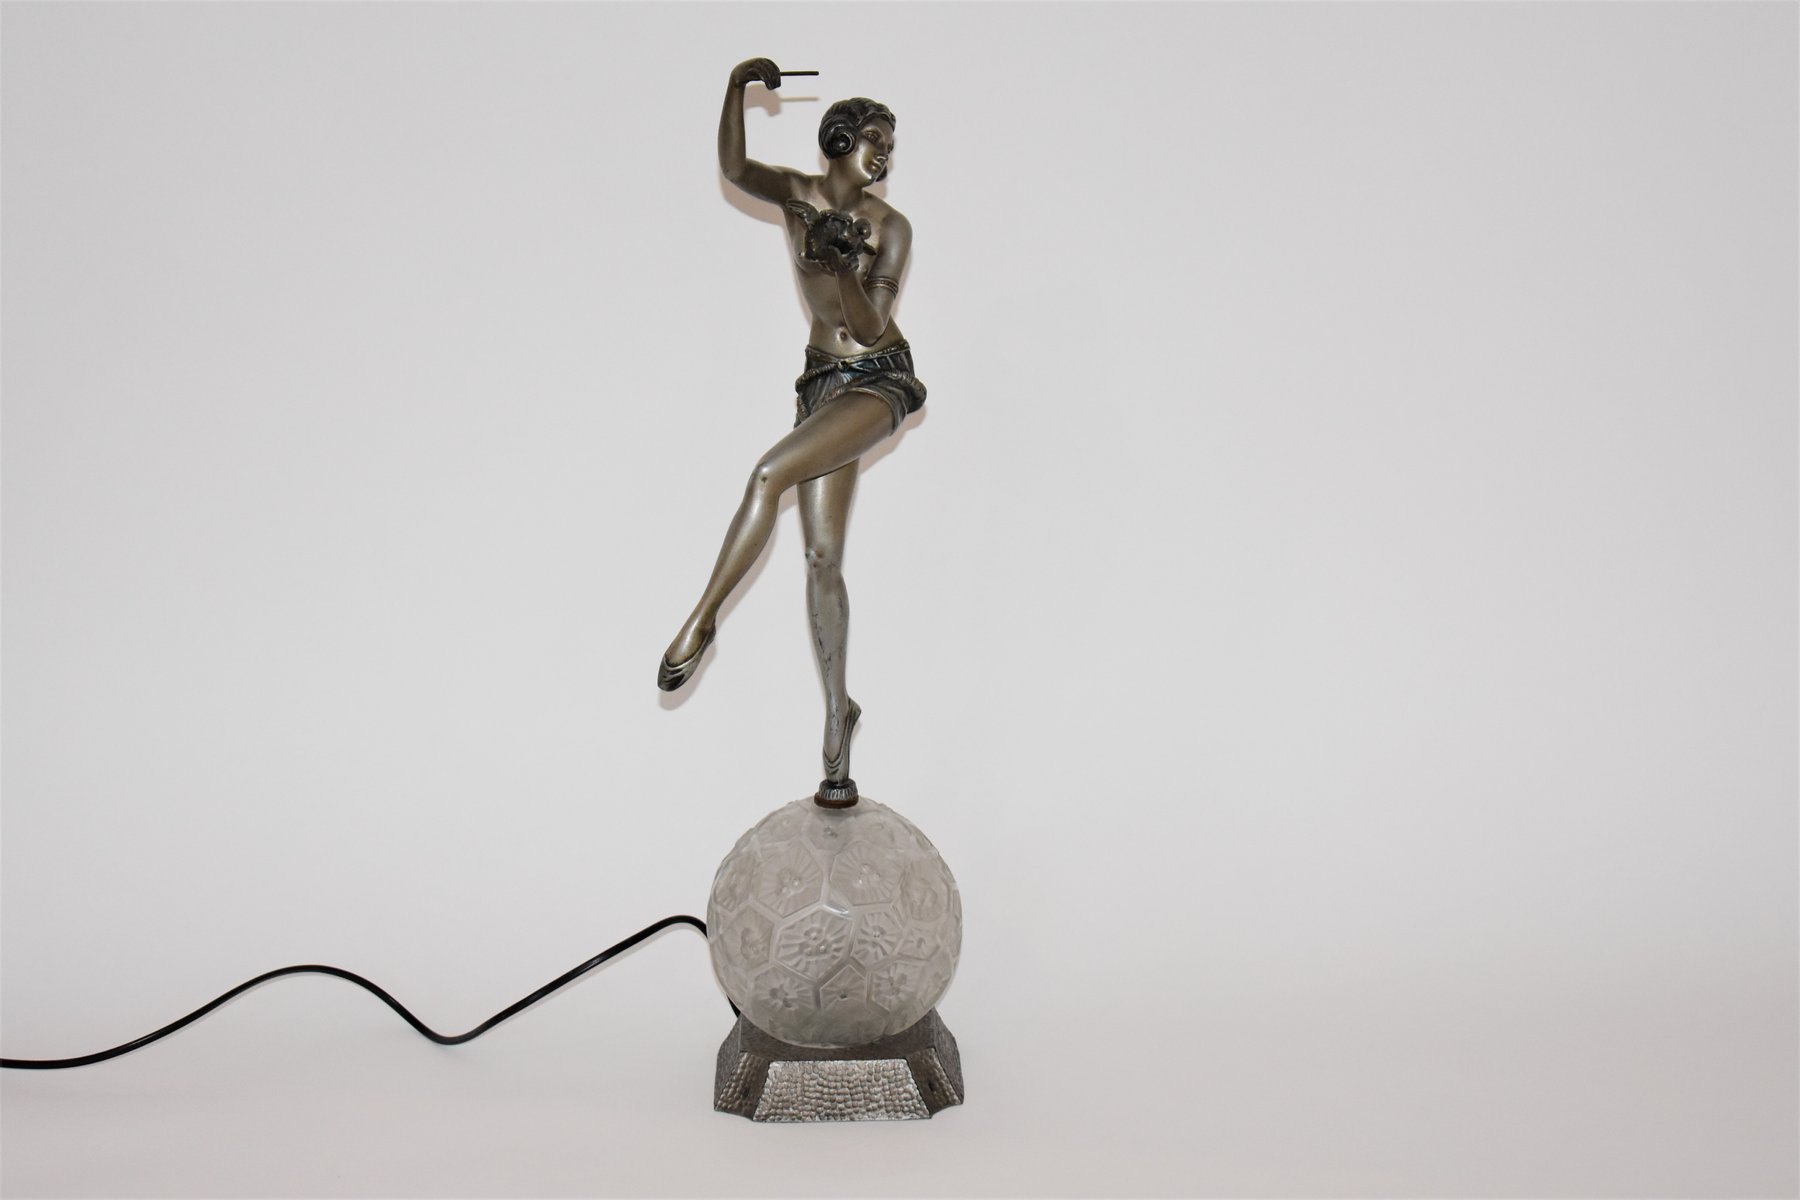 Art Deco Woman With Globe Table Lamp By Enrique Molins